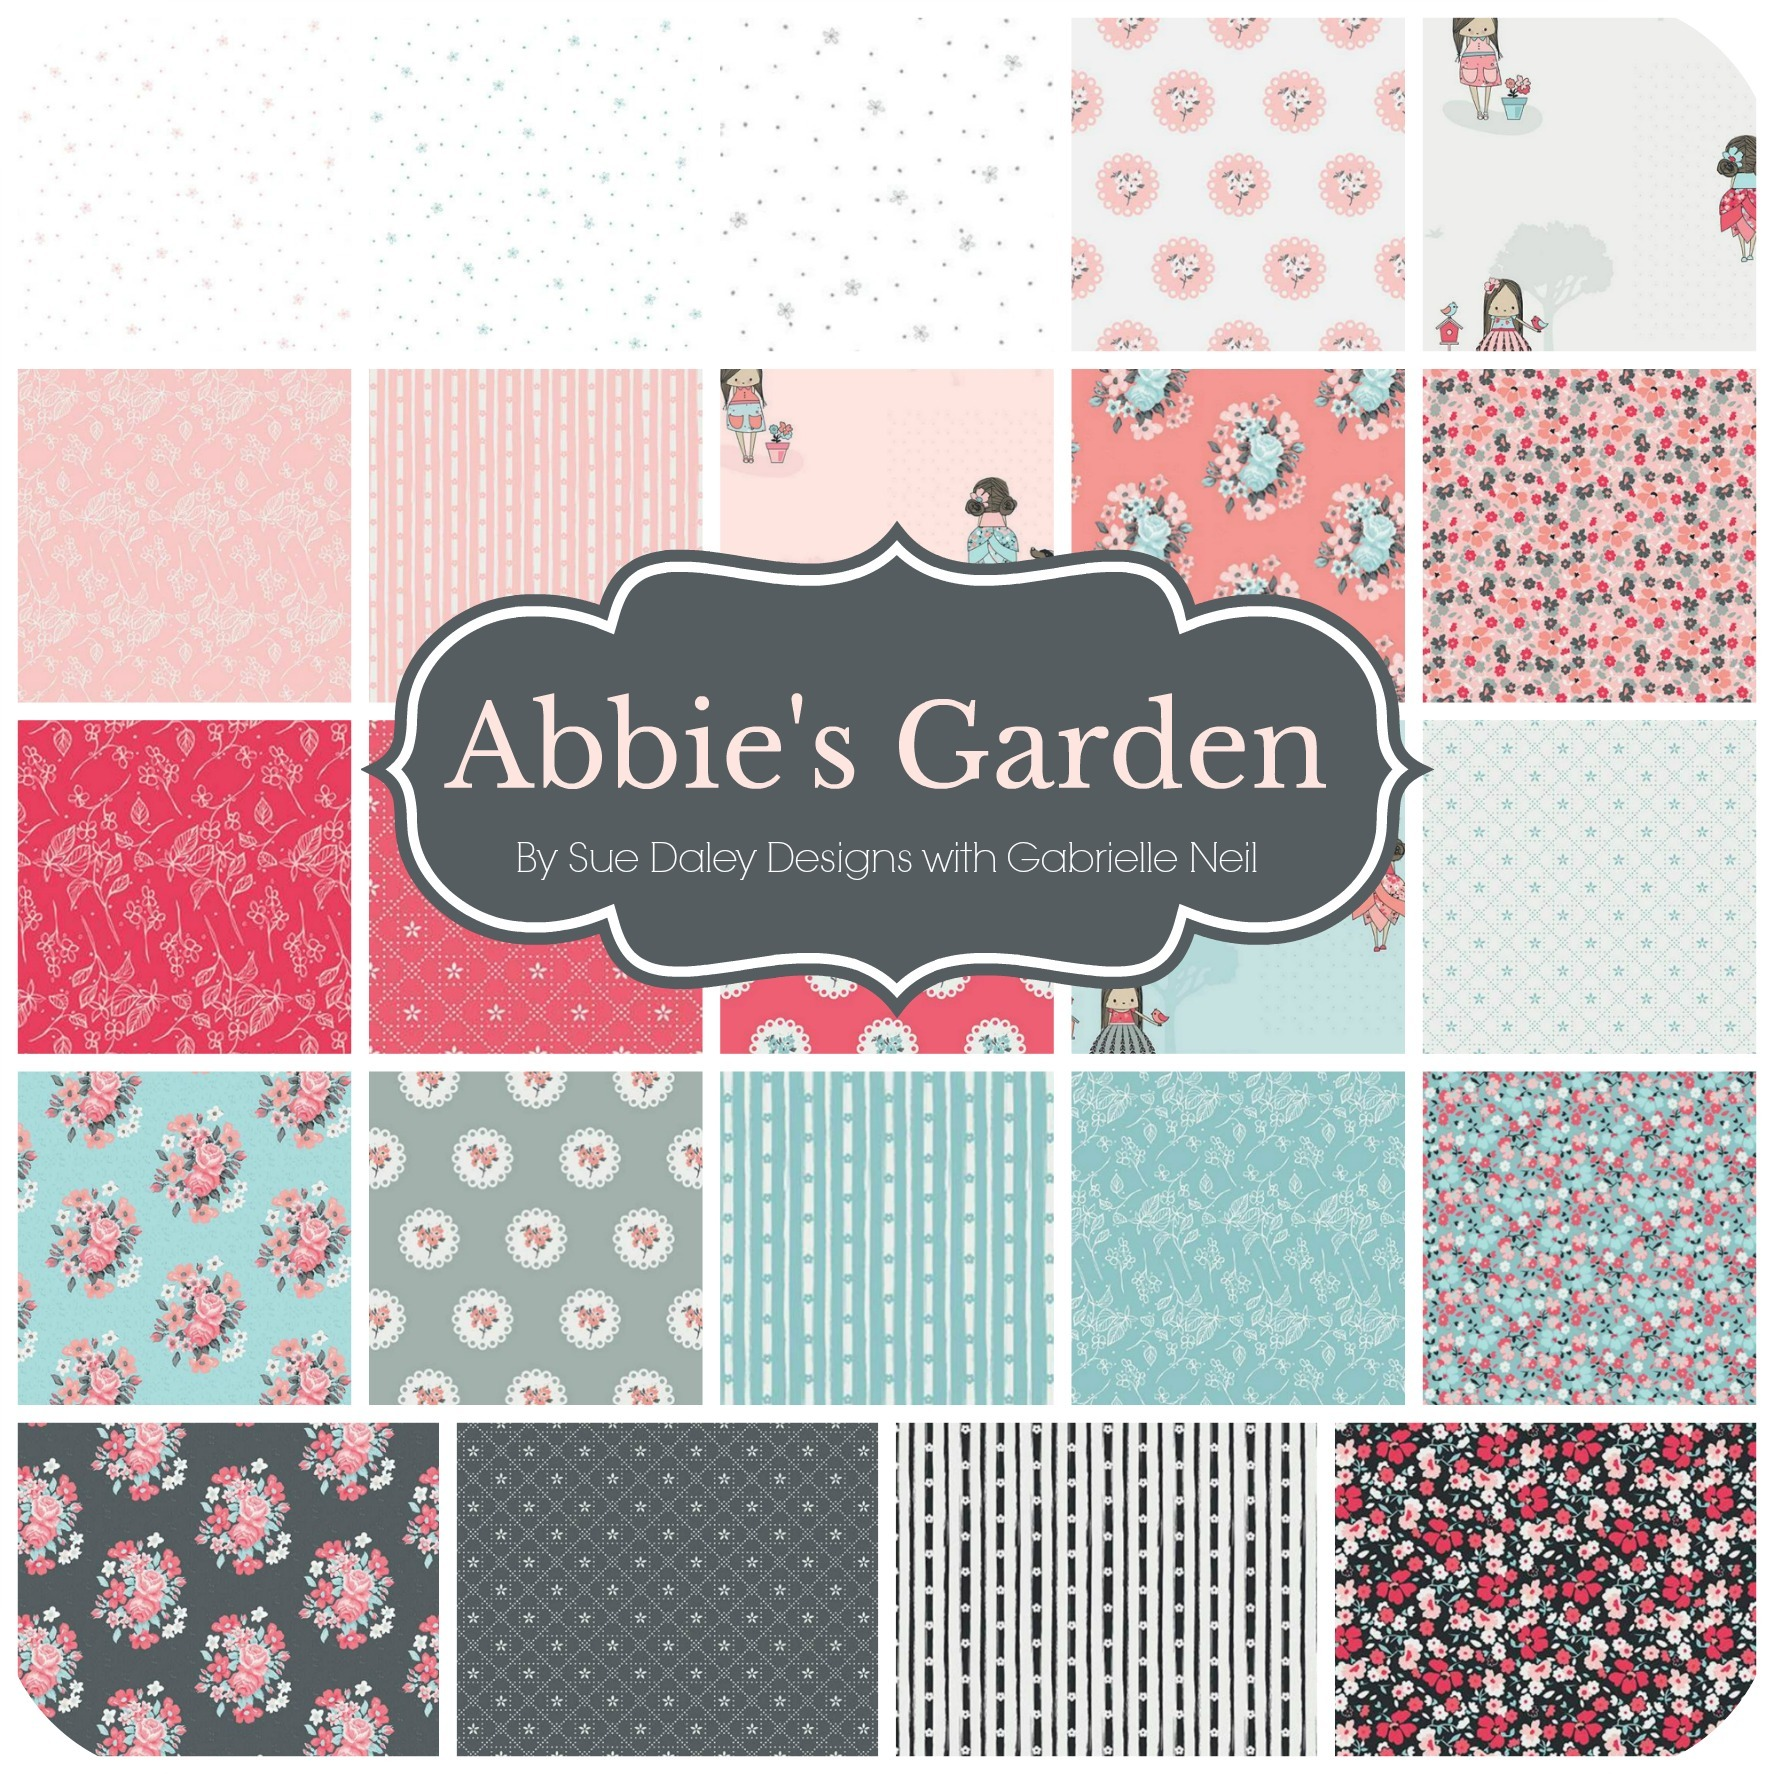 Abbie's Garden by Sue Daley Designs